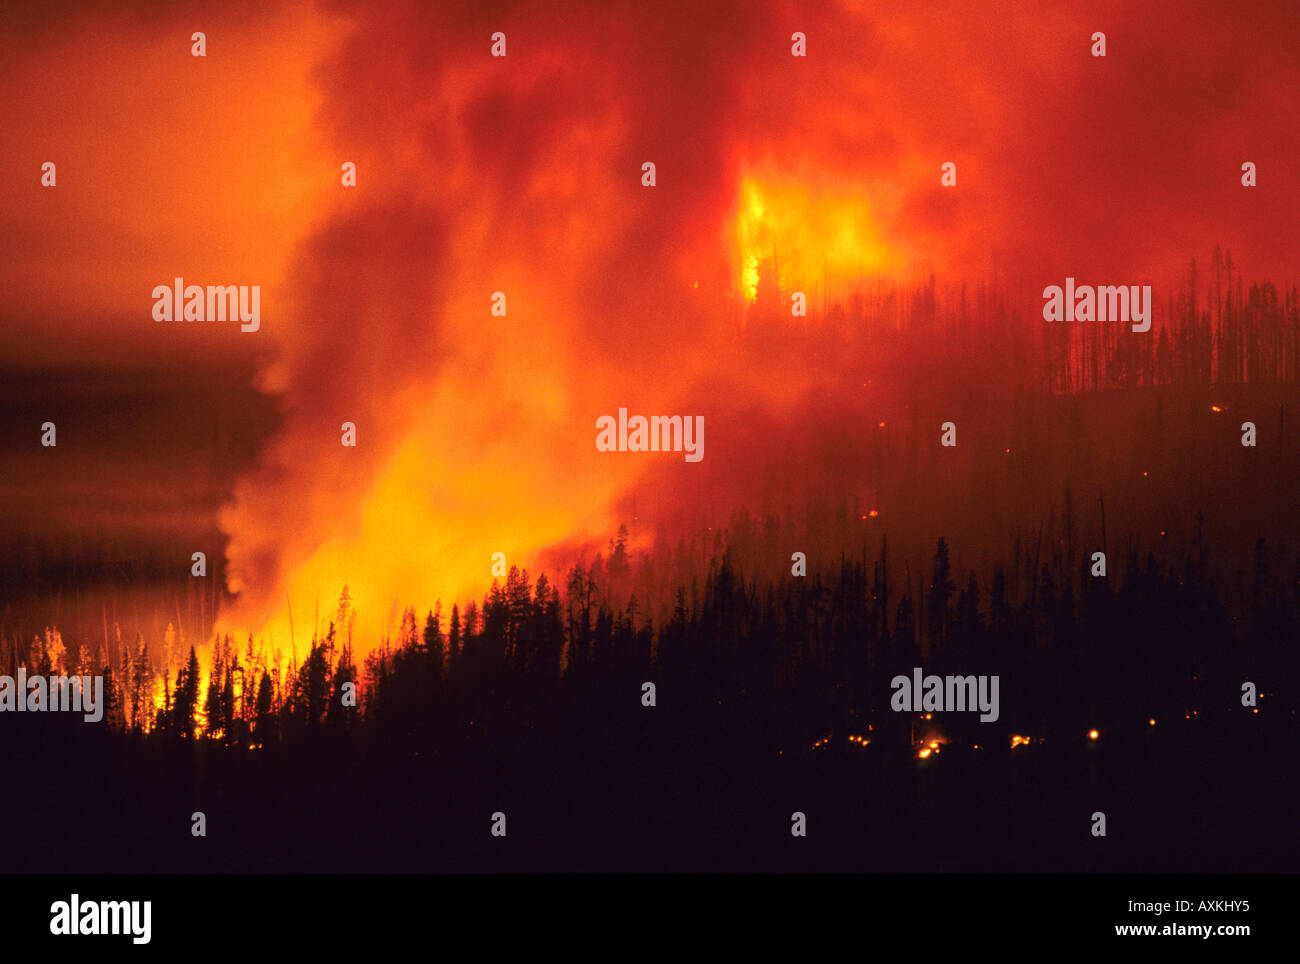 A forest fire at night in the Boise National Forest Idaho - Stock Image